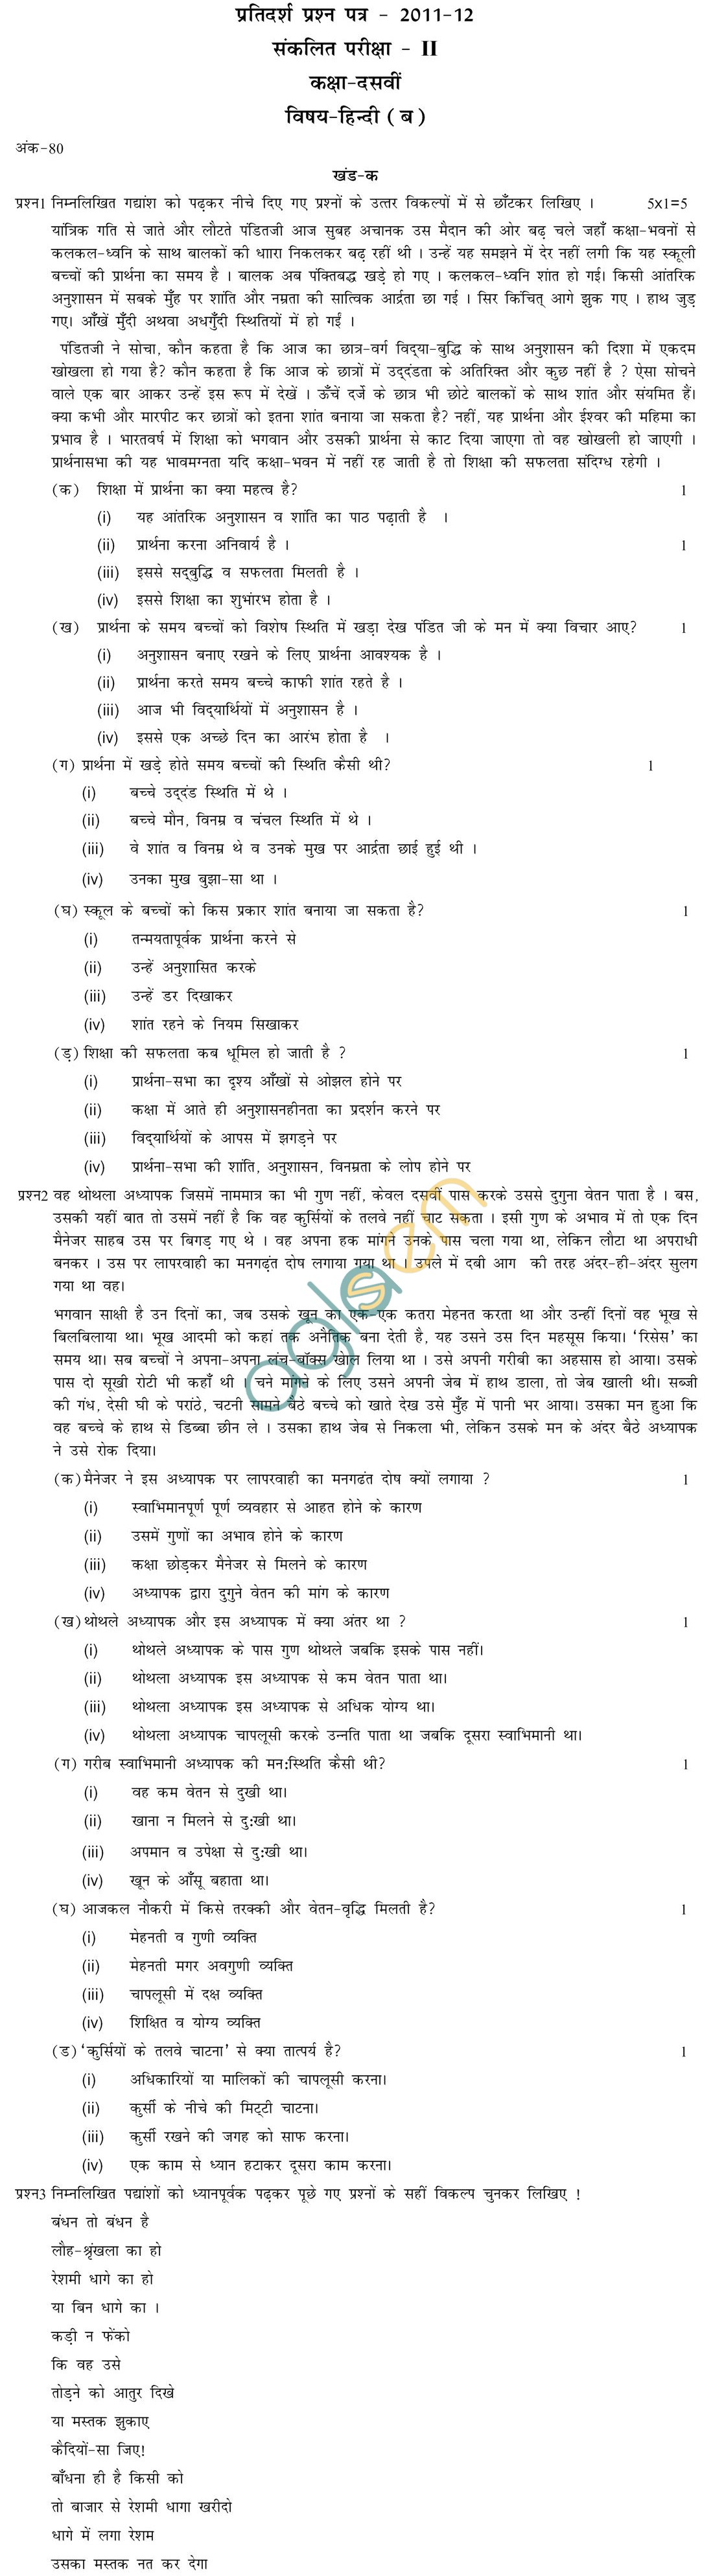 Cbse sample papers for class 10 sa2 hindi solved 2016 set 5.